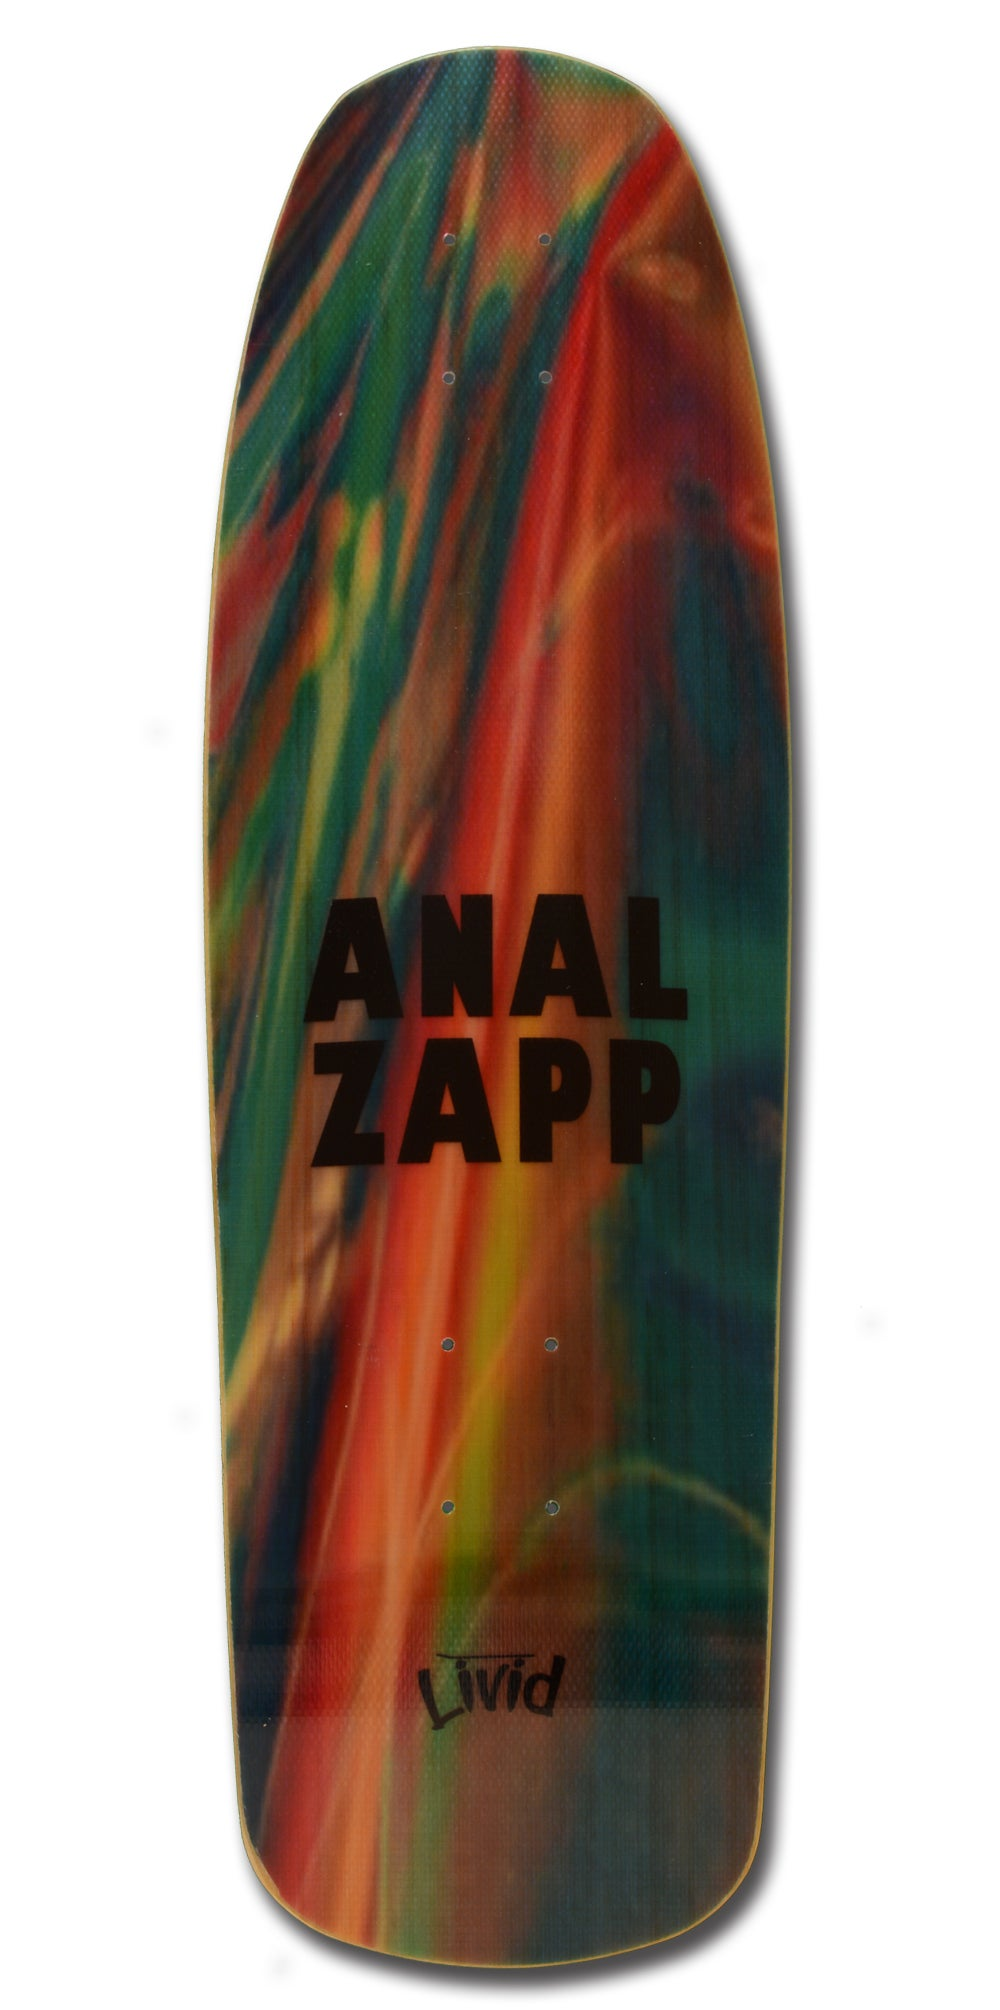 Image of ANAL ZAPP